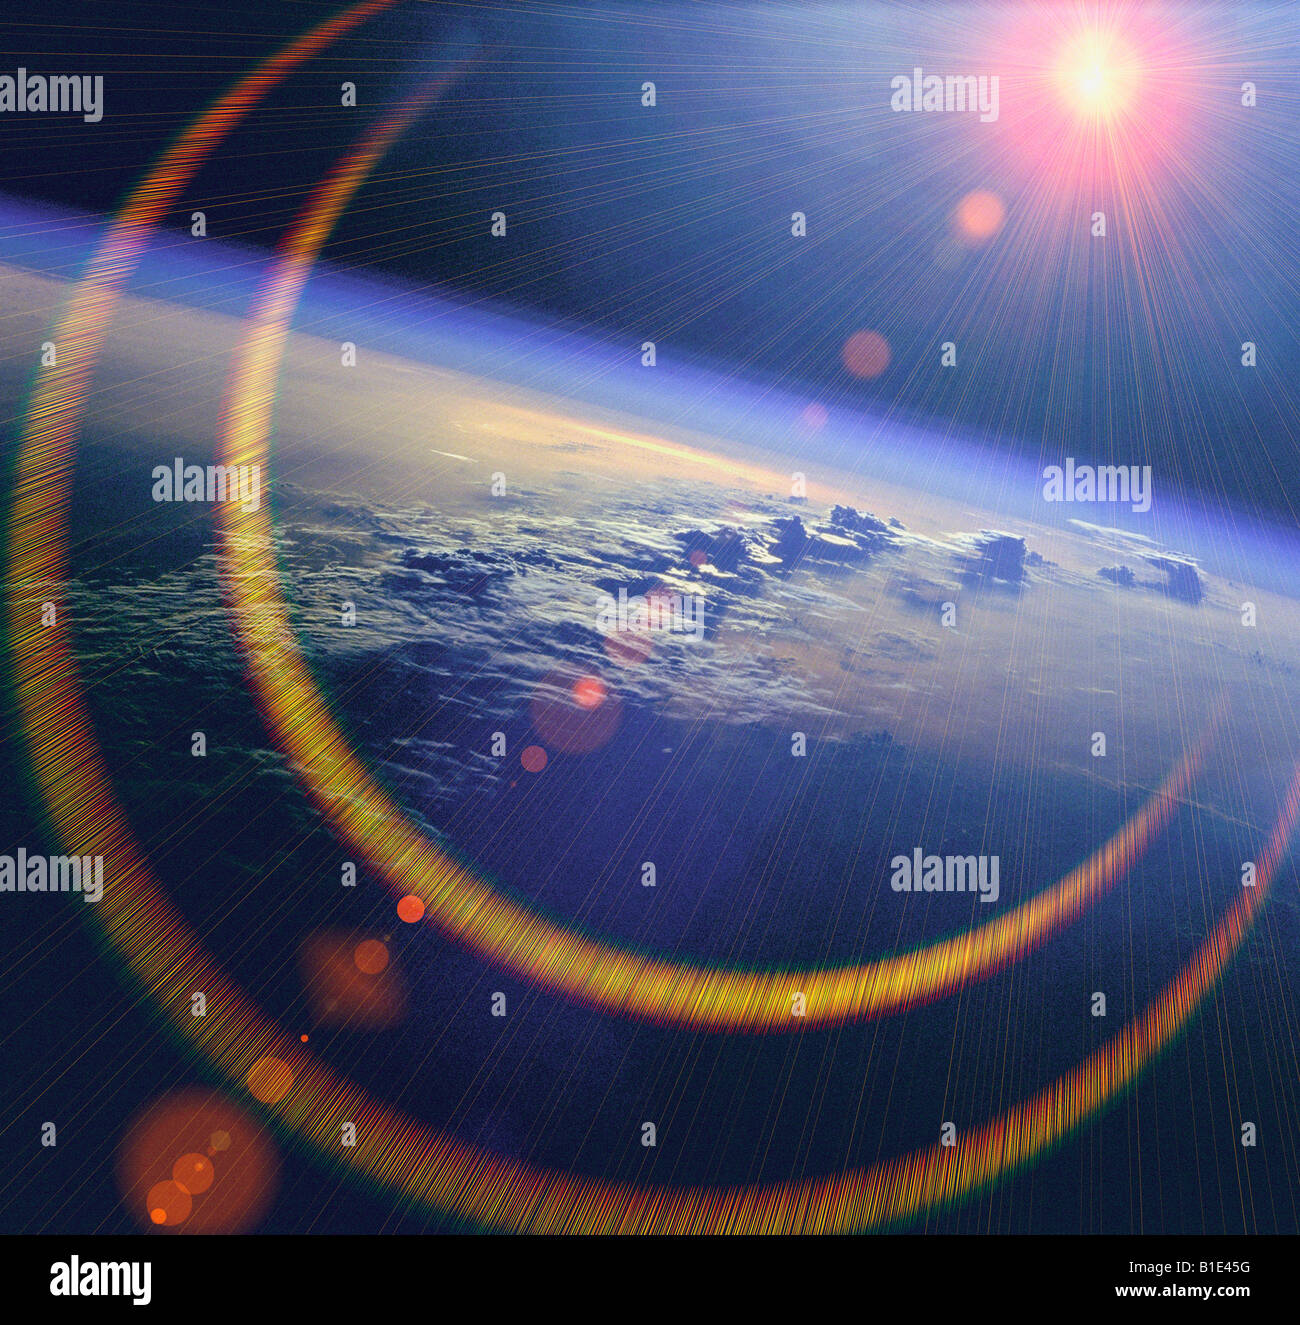 view from NASA shuttle of the earth and sun from outer space - Stock Image